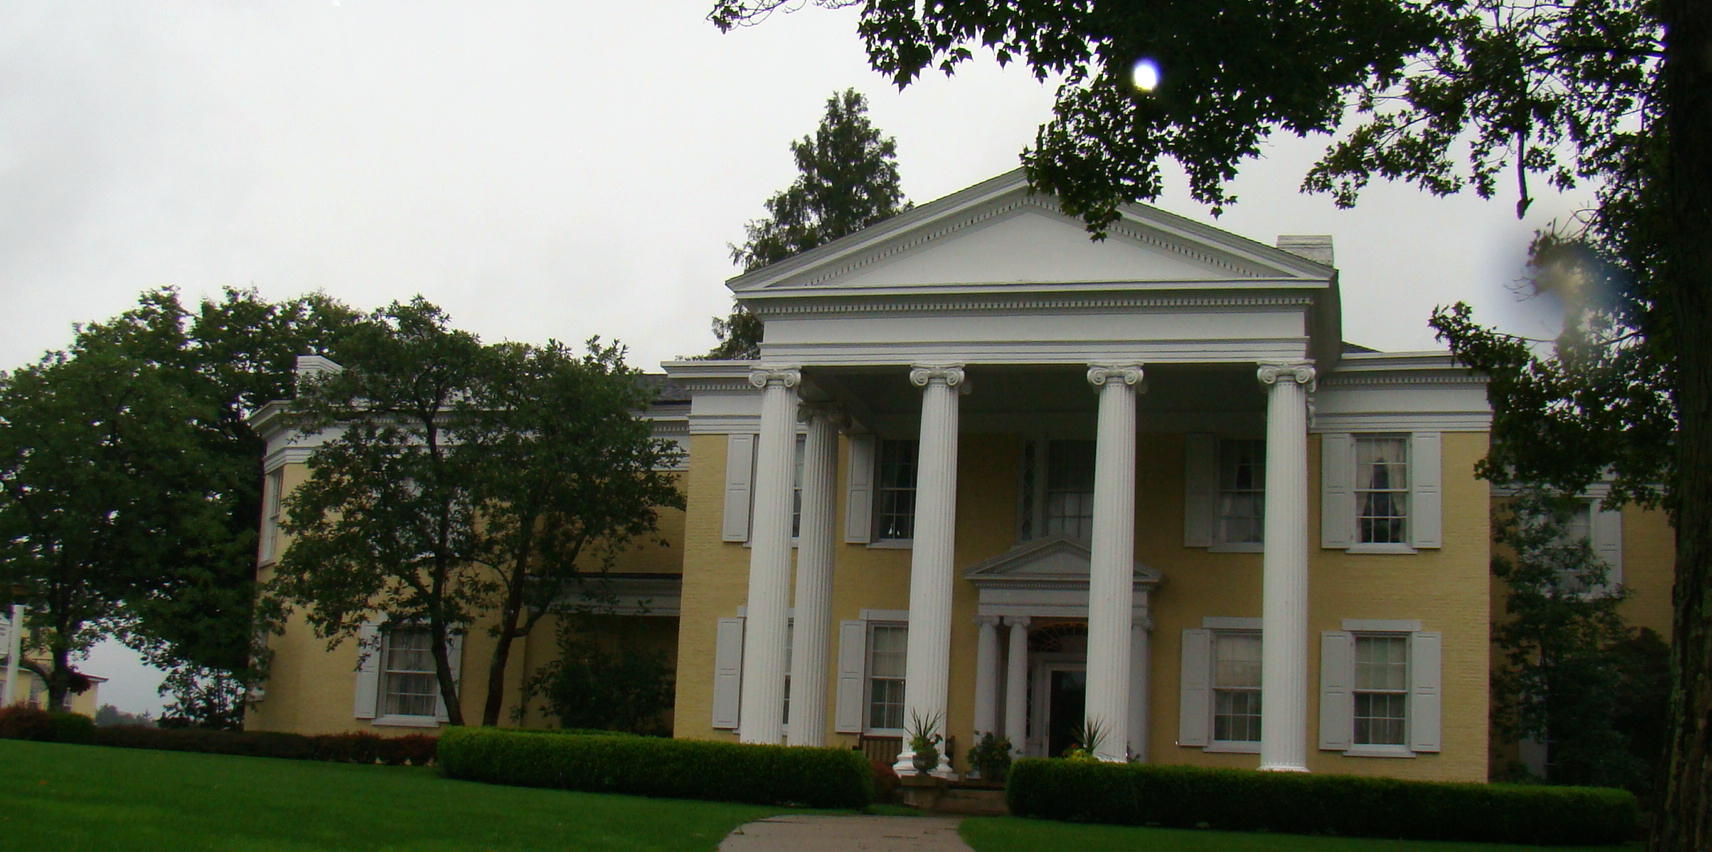 Oglebay Park Mansion